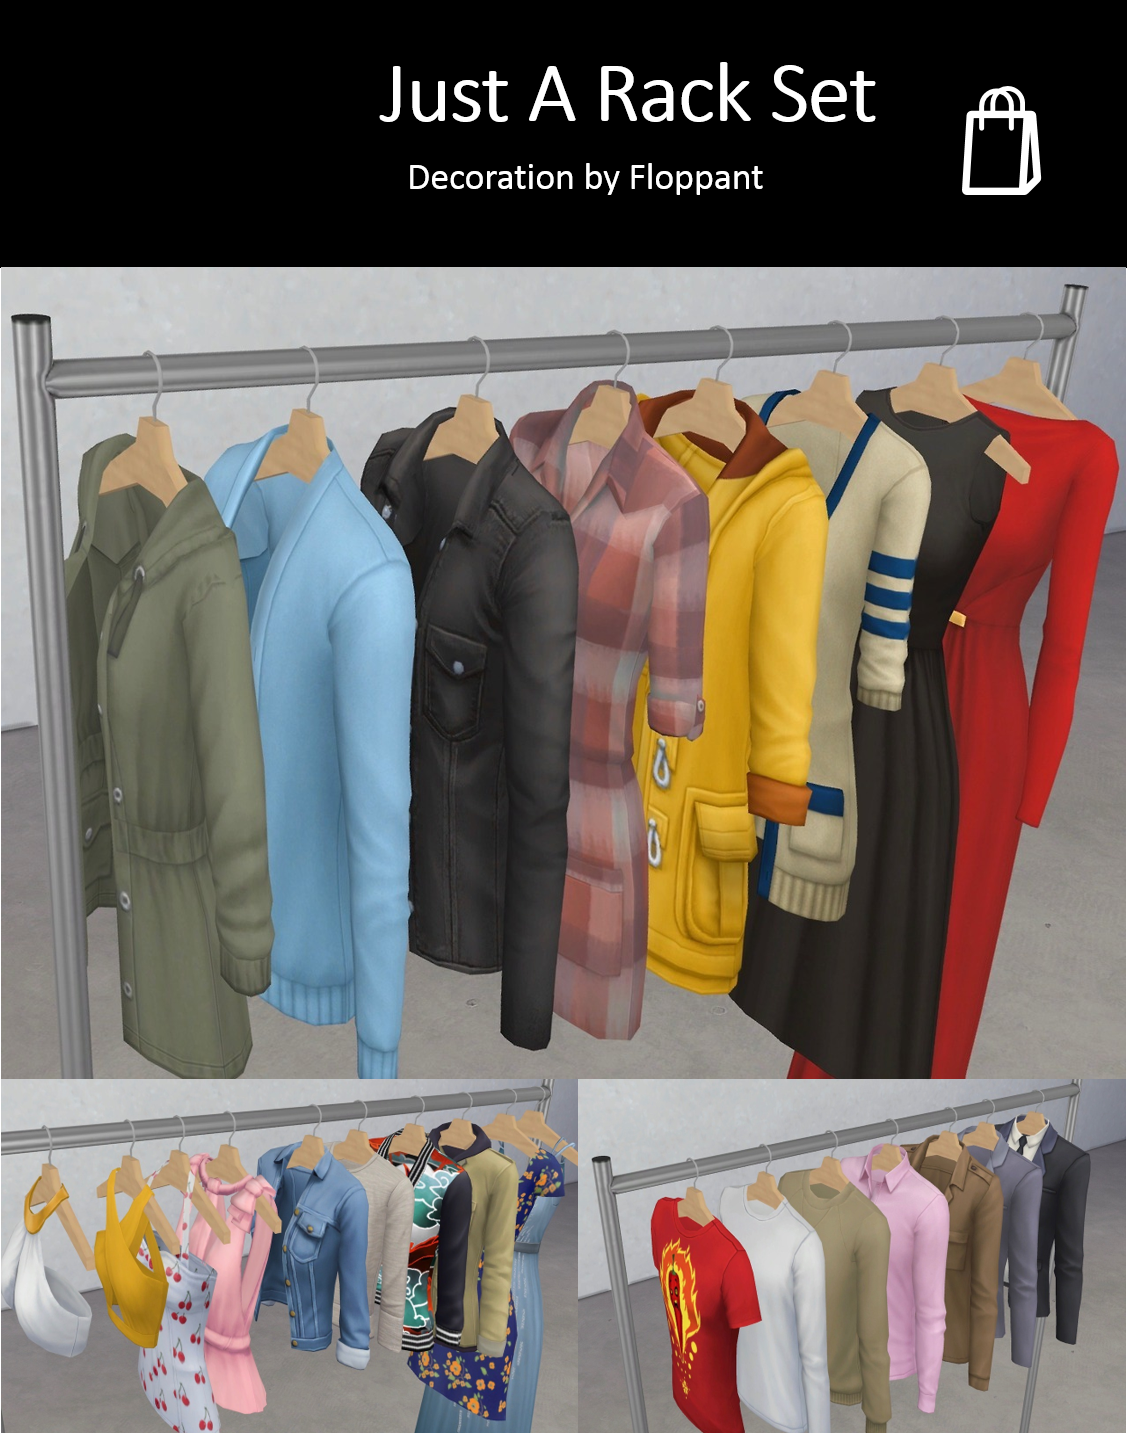 Just A Rack Set By Floppant Via Tumblr Retail Fashion Store Bcg Sims 4 Ts4 Maxis Match Mm Cc Pin By Sueladysims Sims 4 Maxis Match Sims